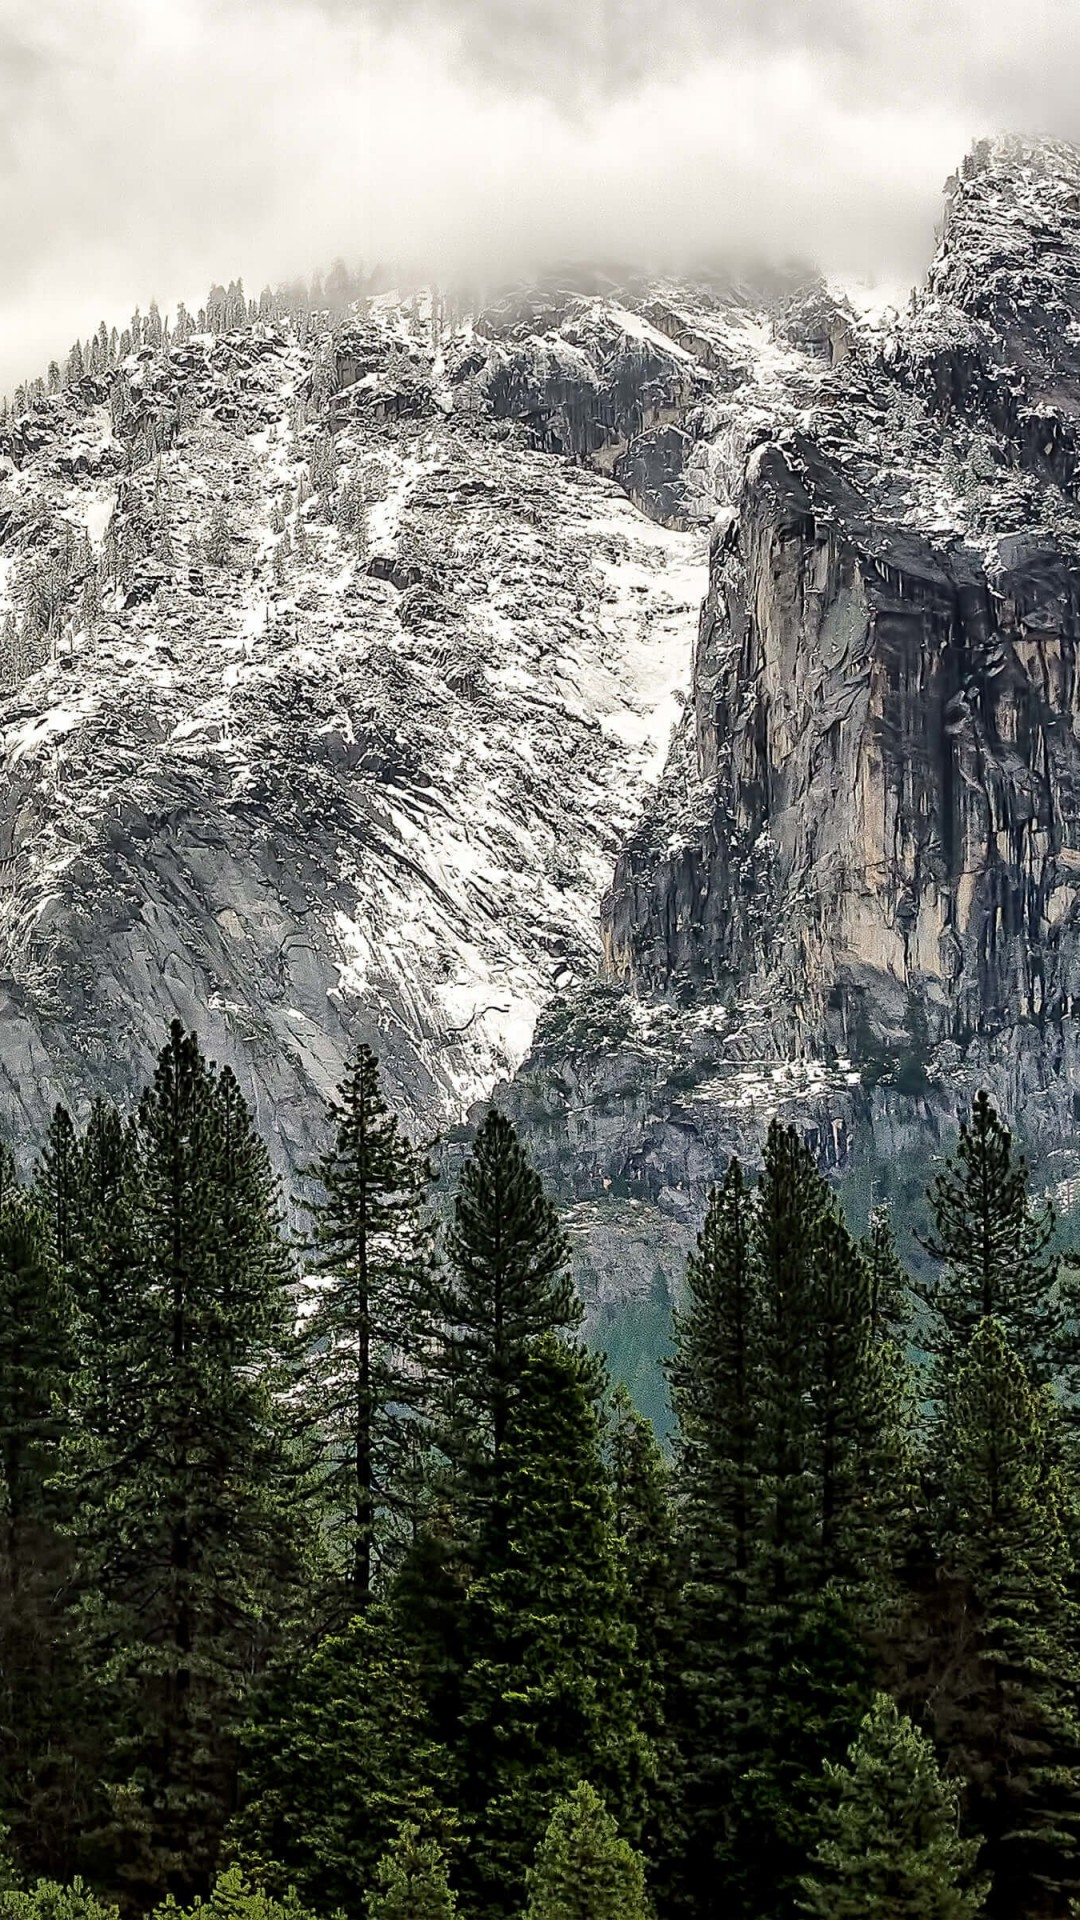 Winter Day at Yosemite National Park Wallpaper for SAMSUNG Galaxy Note 3